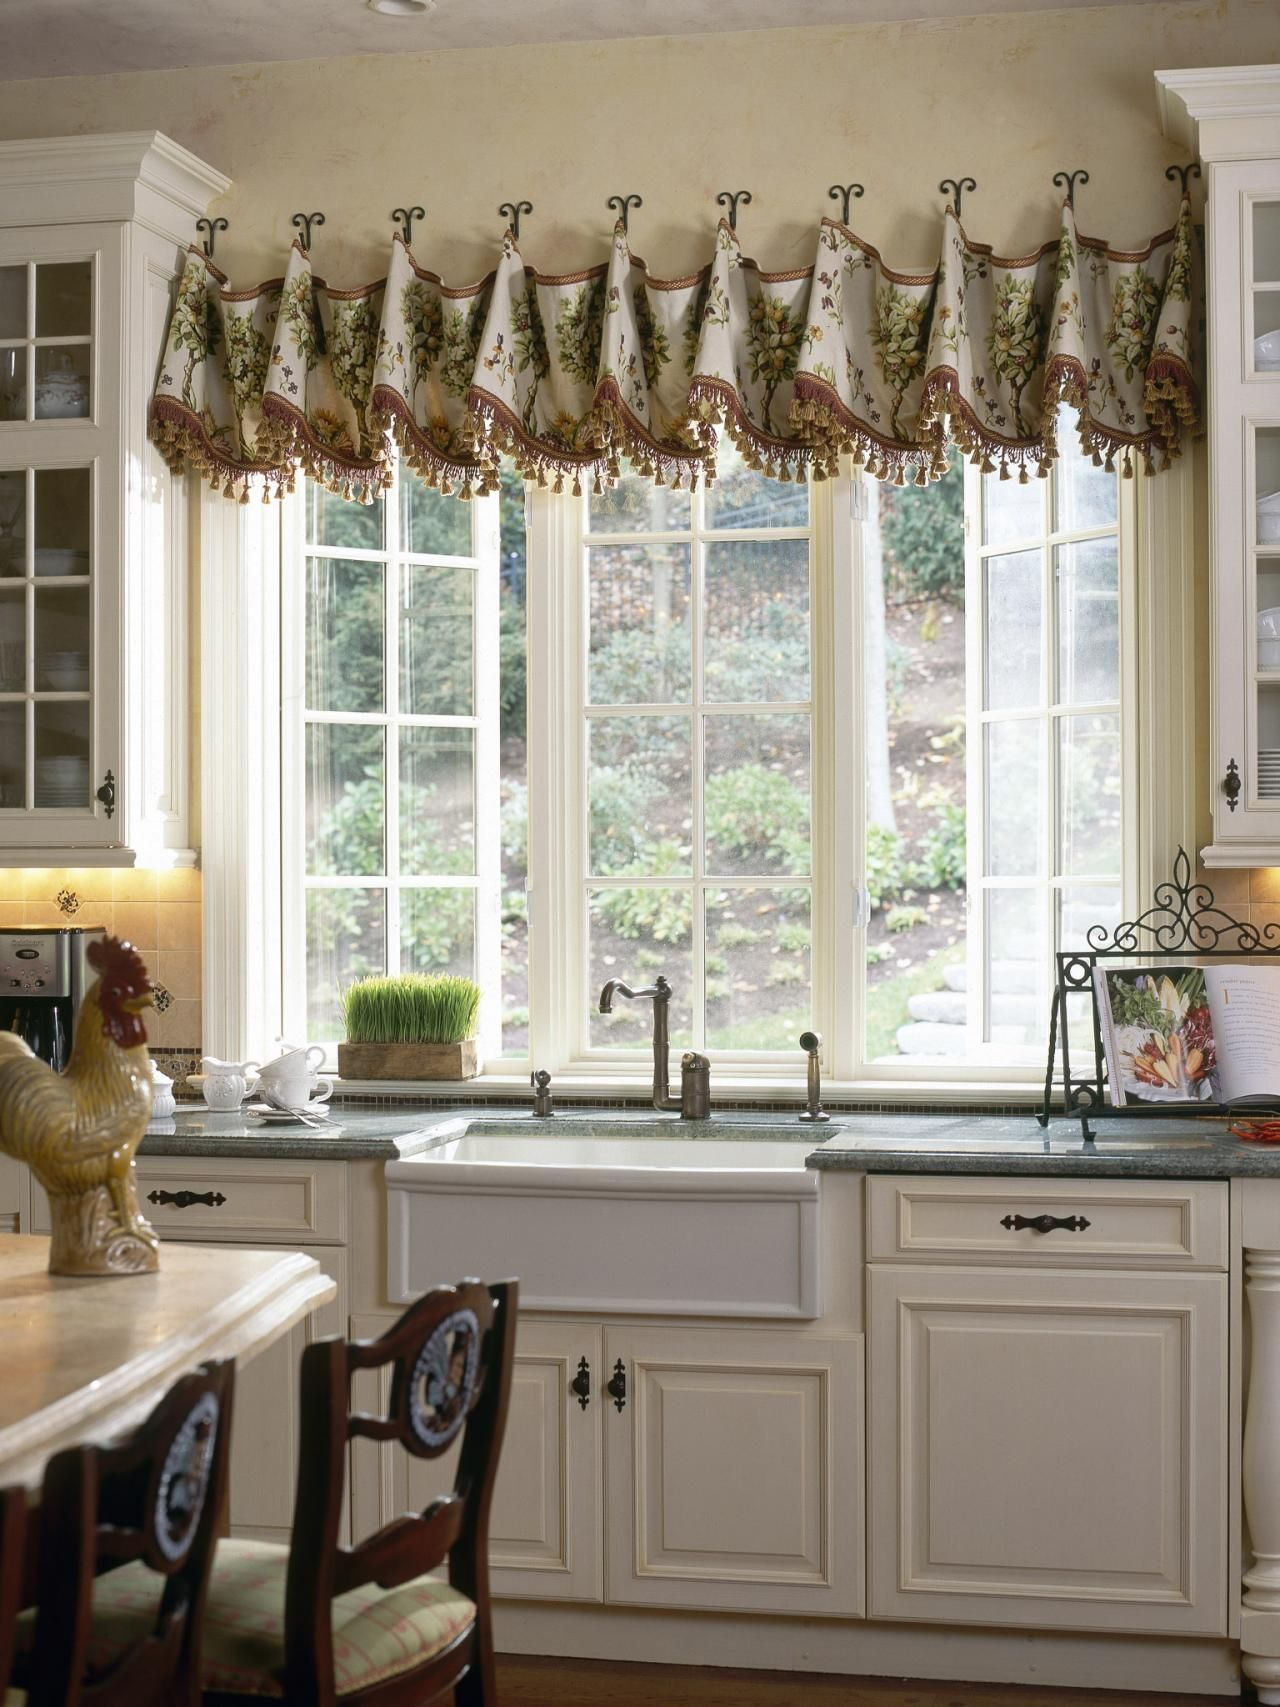 Unique window covering ideas that use everyday materials in